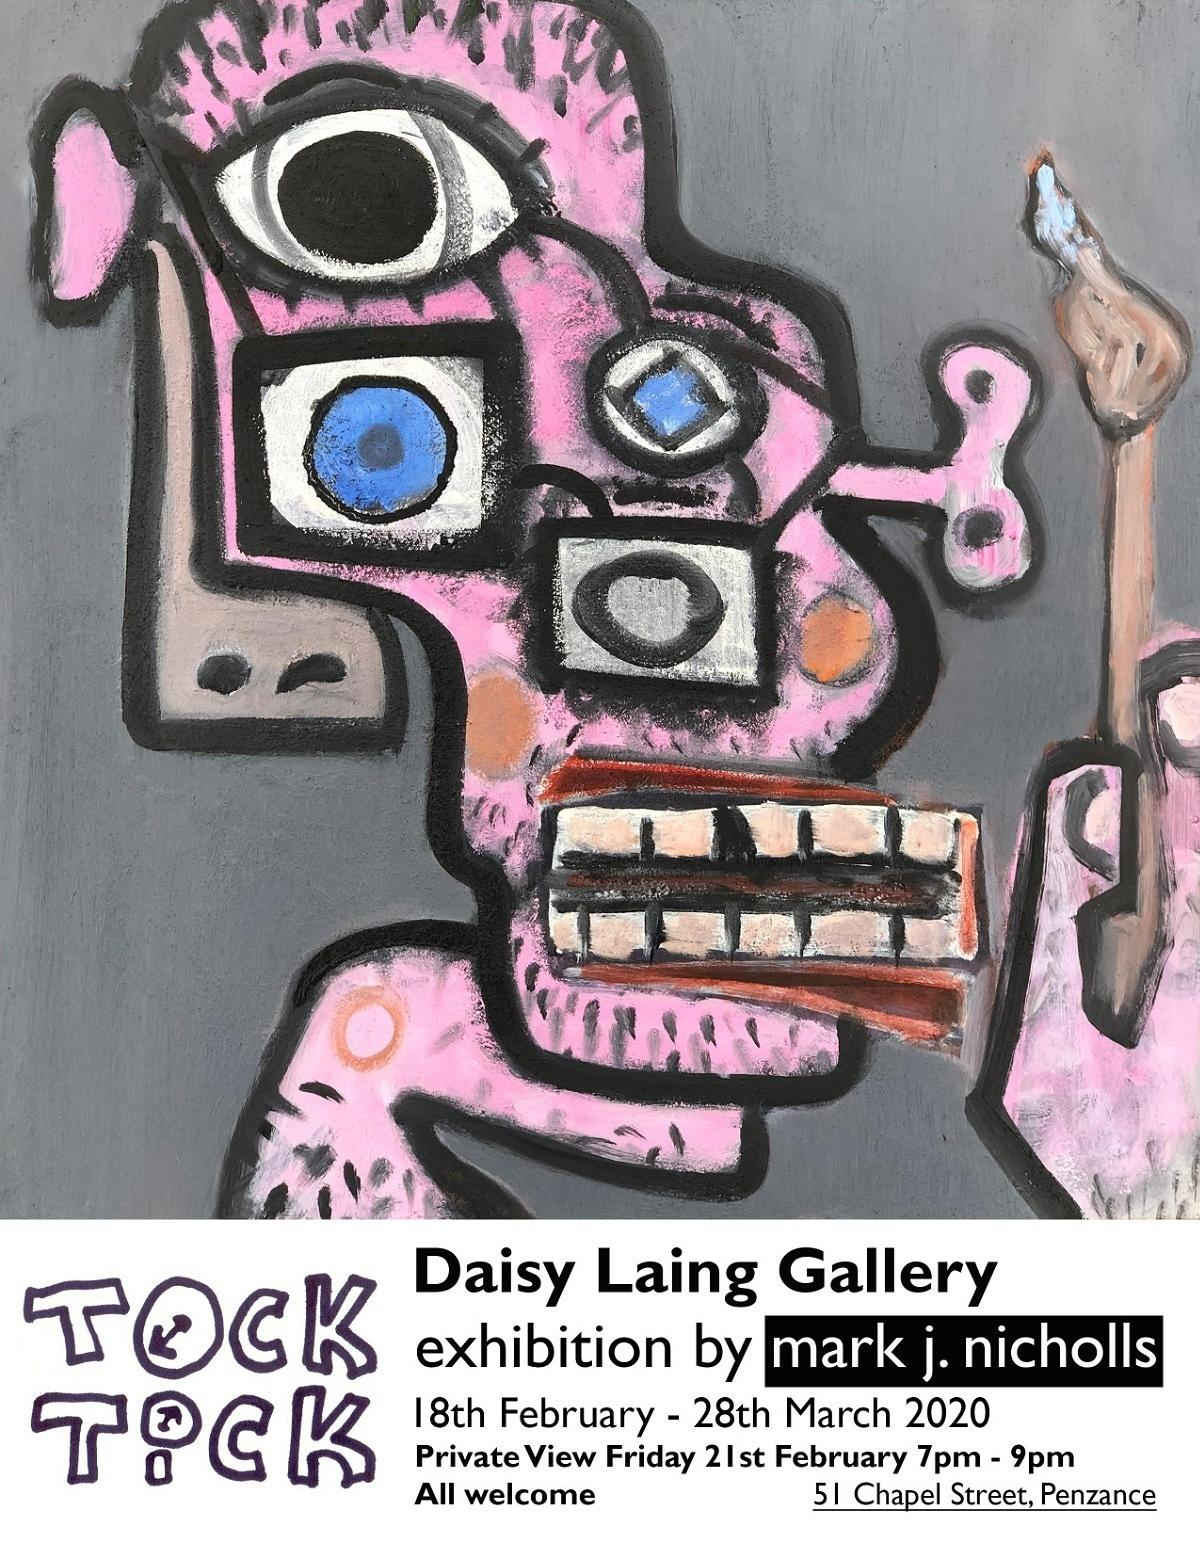 latest exhibition at daisy laing gallery